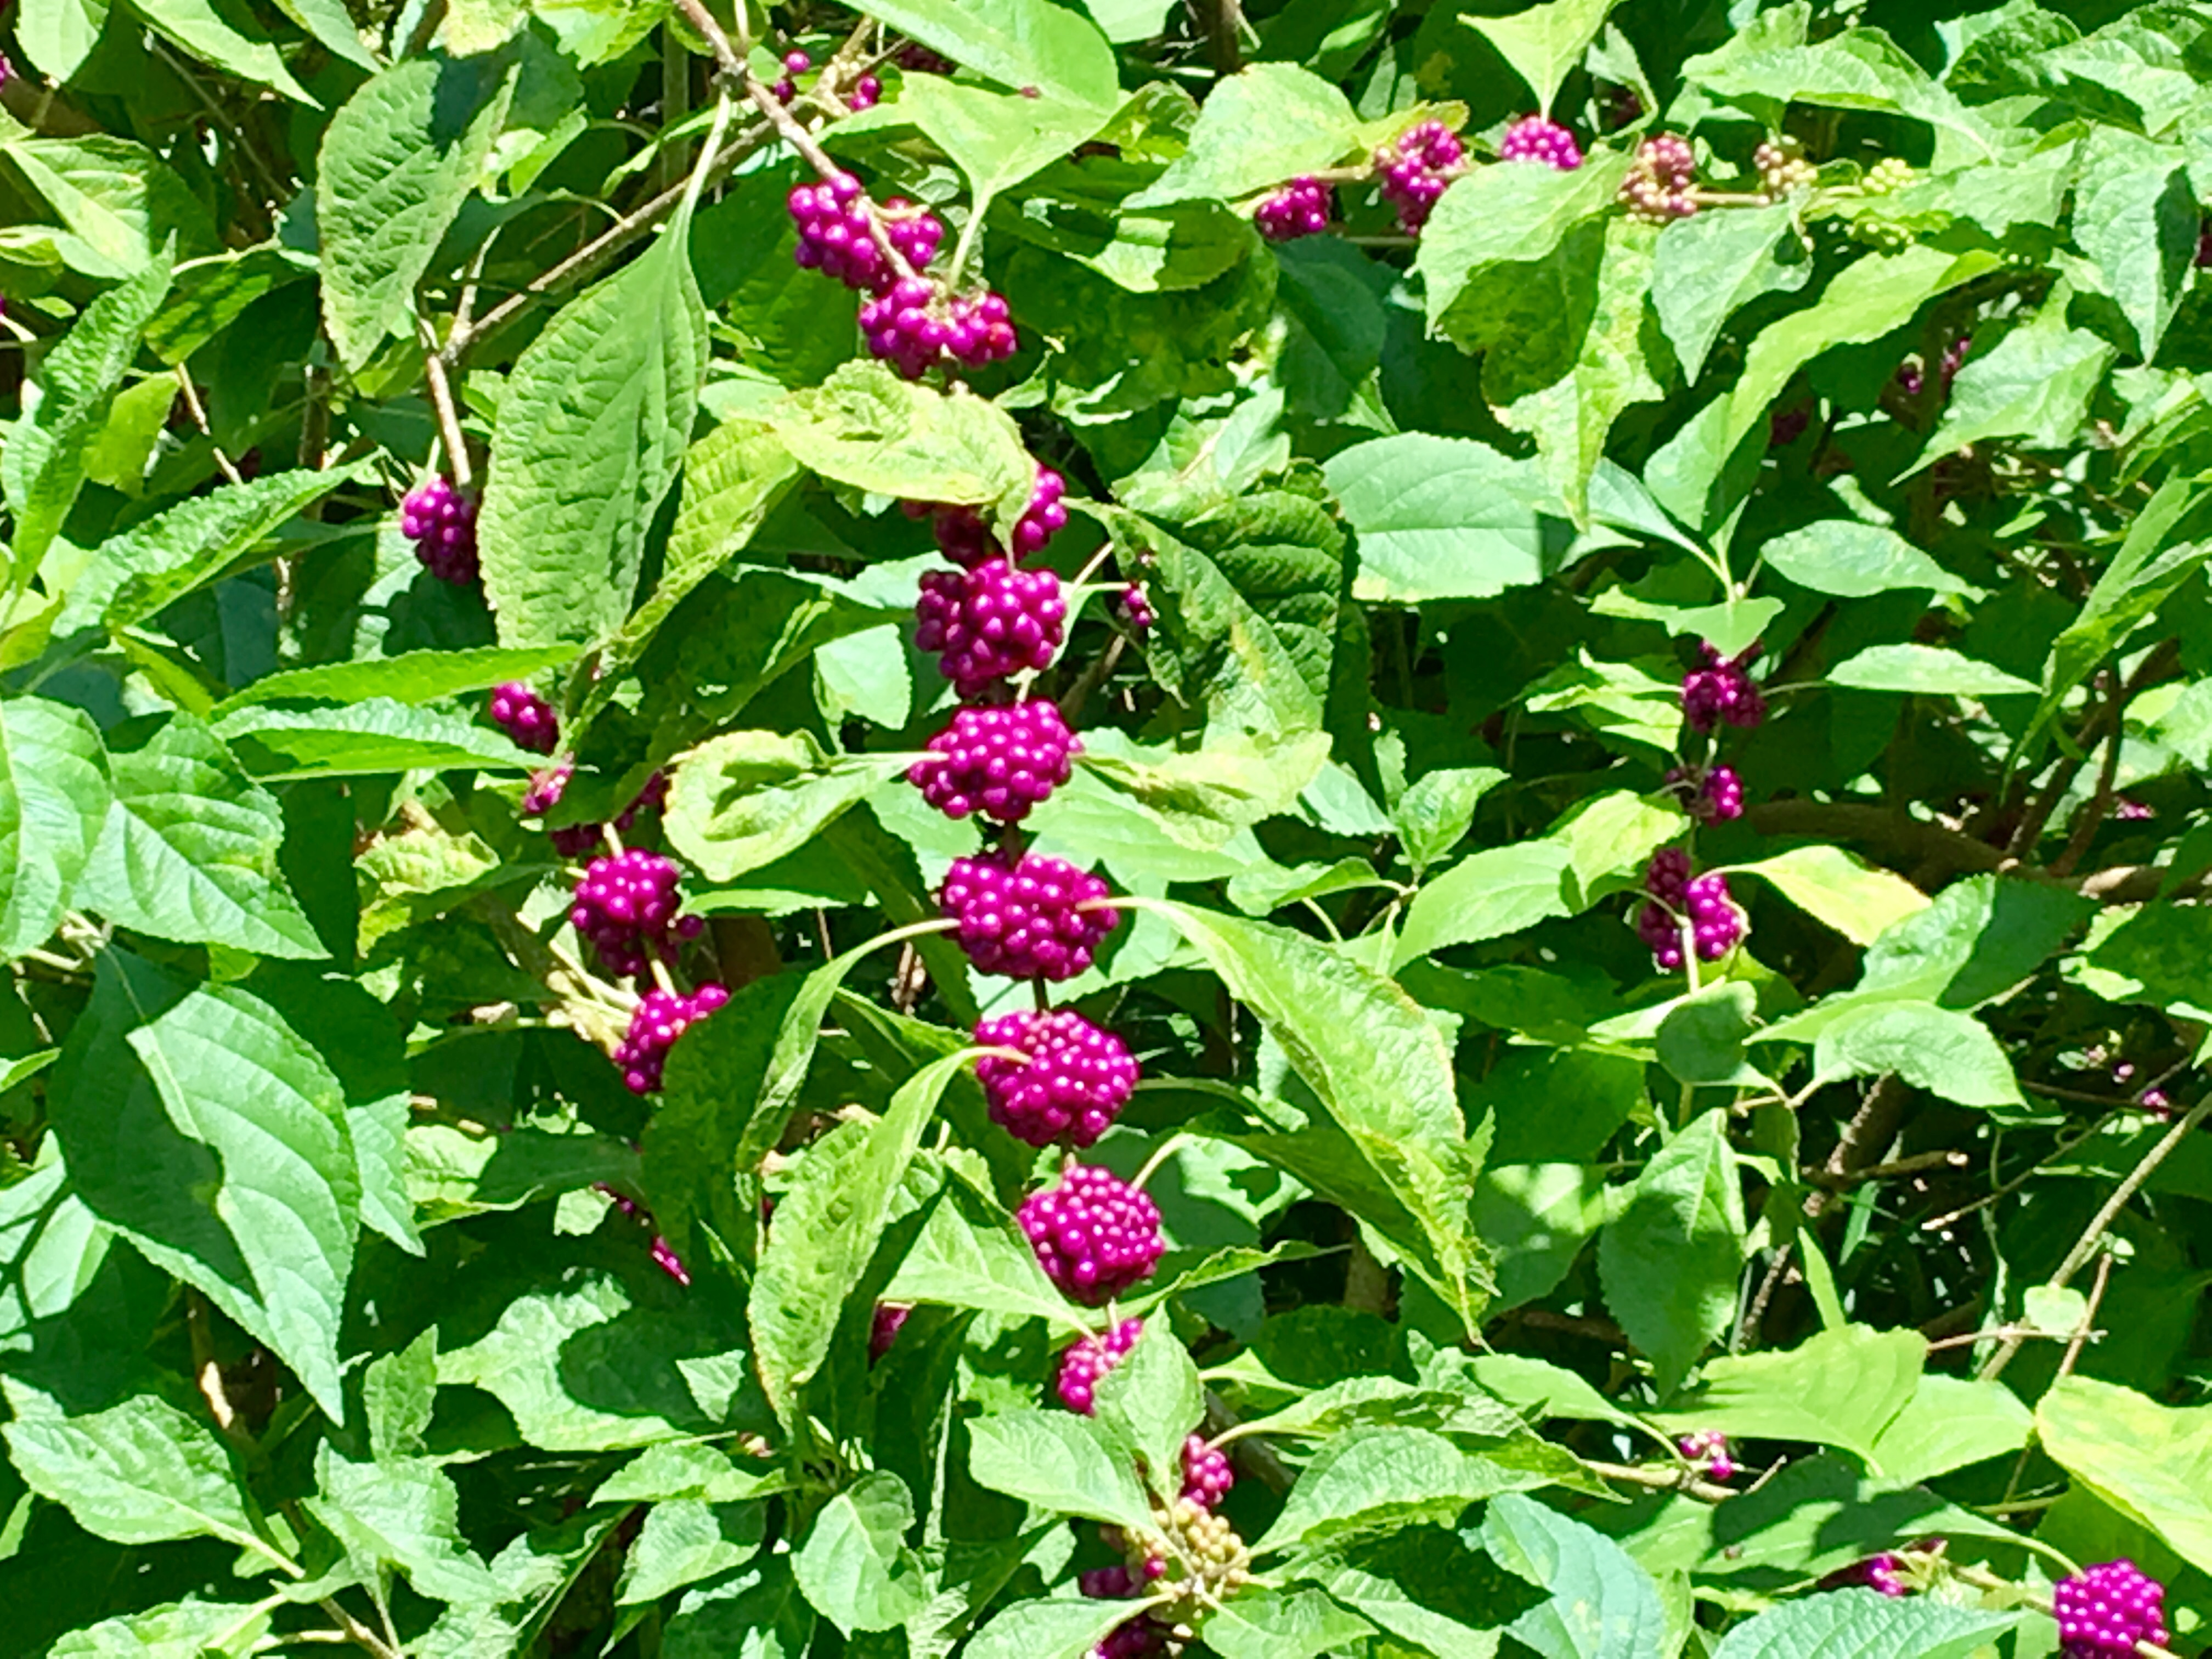 beautyberry berries on branch.JPG thumbnail